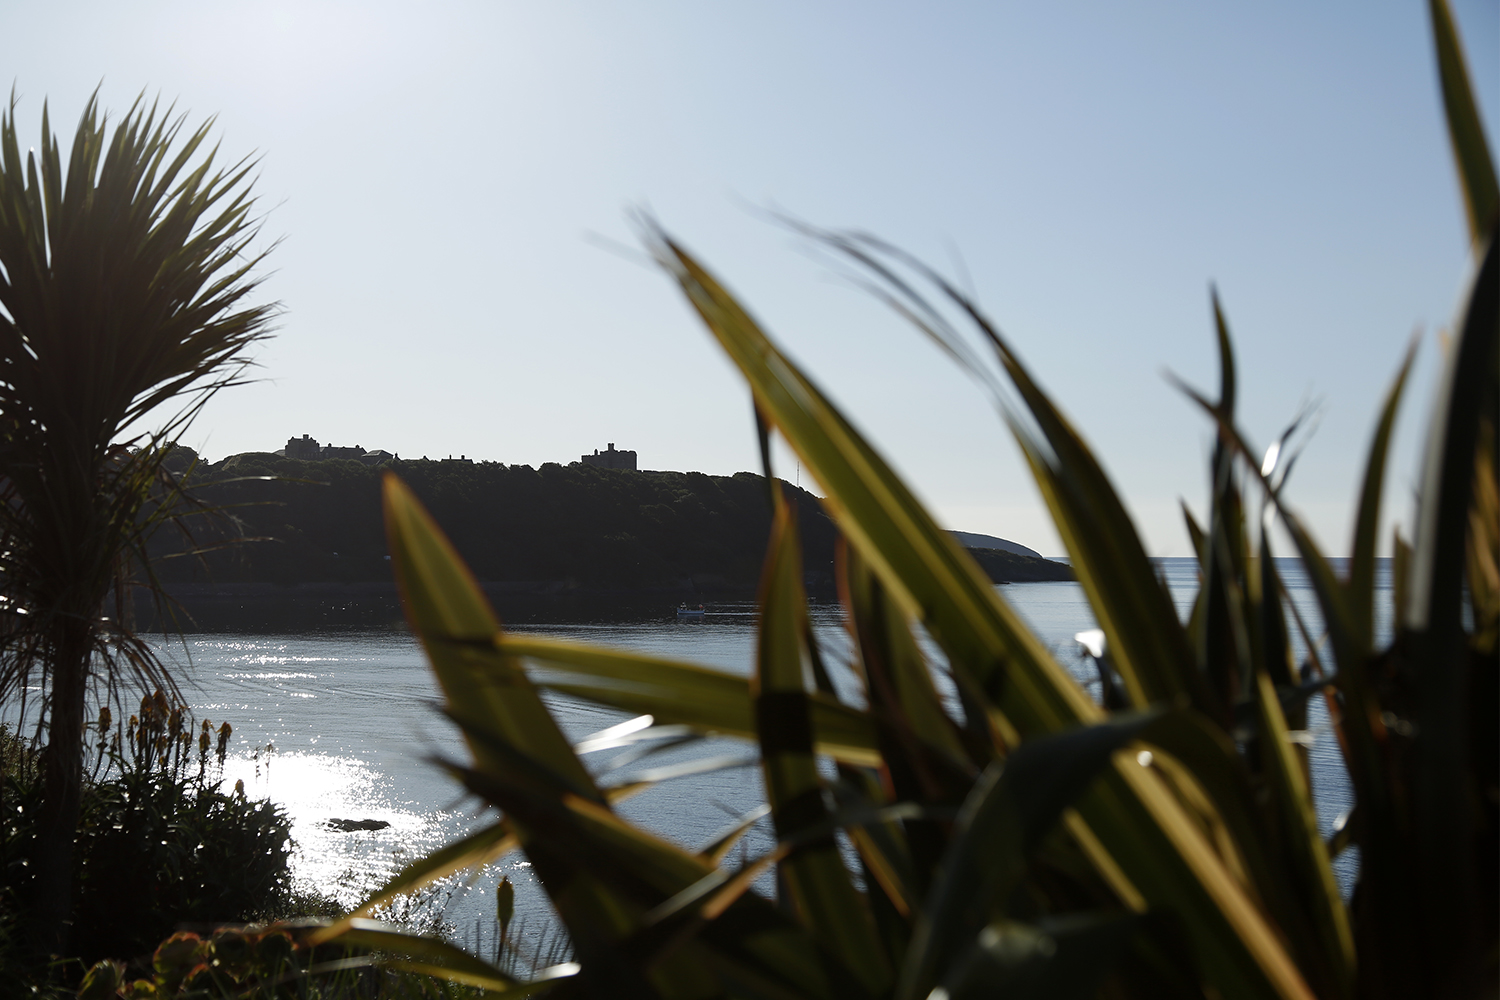 The silhouette of Pendennis Point in Falmouth through some foliage.